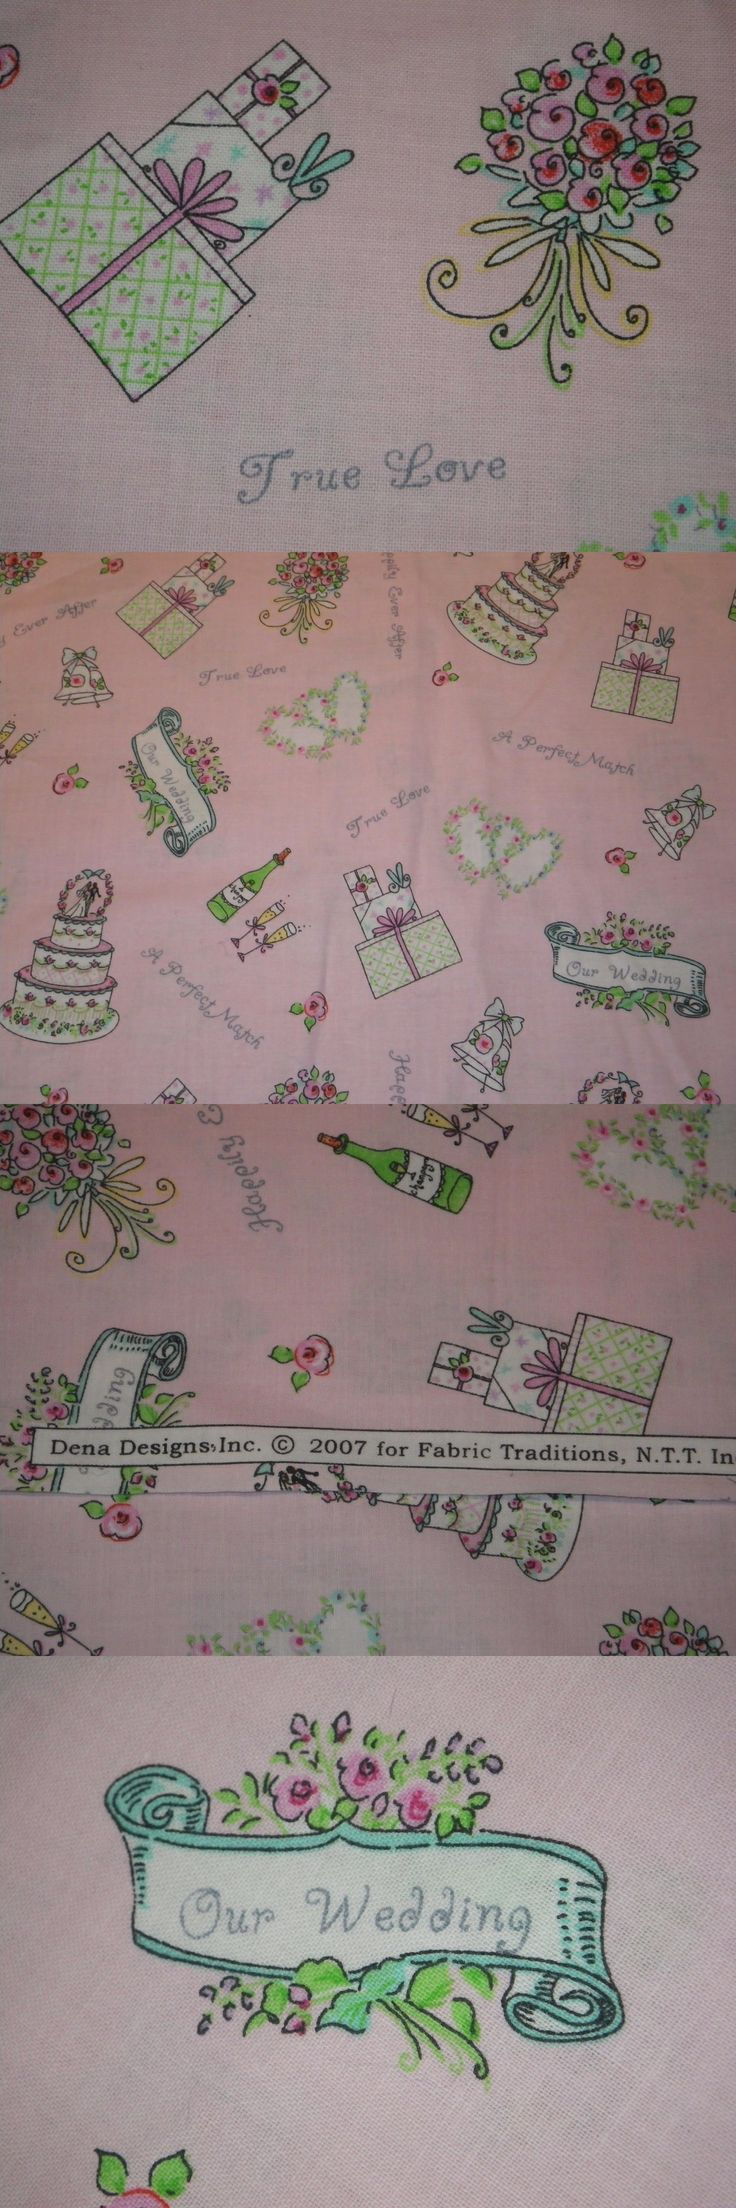 Fabric 28162: Dena Designs Pink Cotton Quilt Floral Wedding Cake Bridal Wine Fabric 3 Yards -> BUY IT NOW ONLY: $30 on eBay!